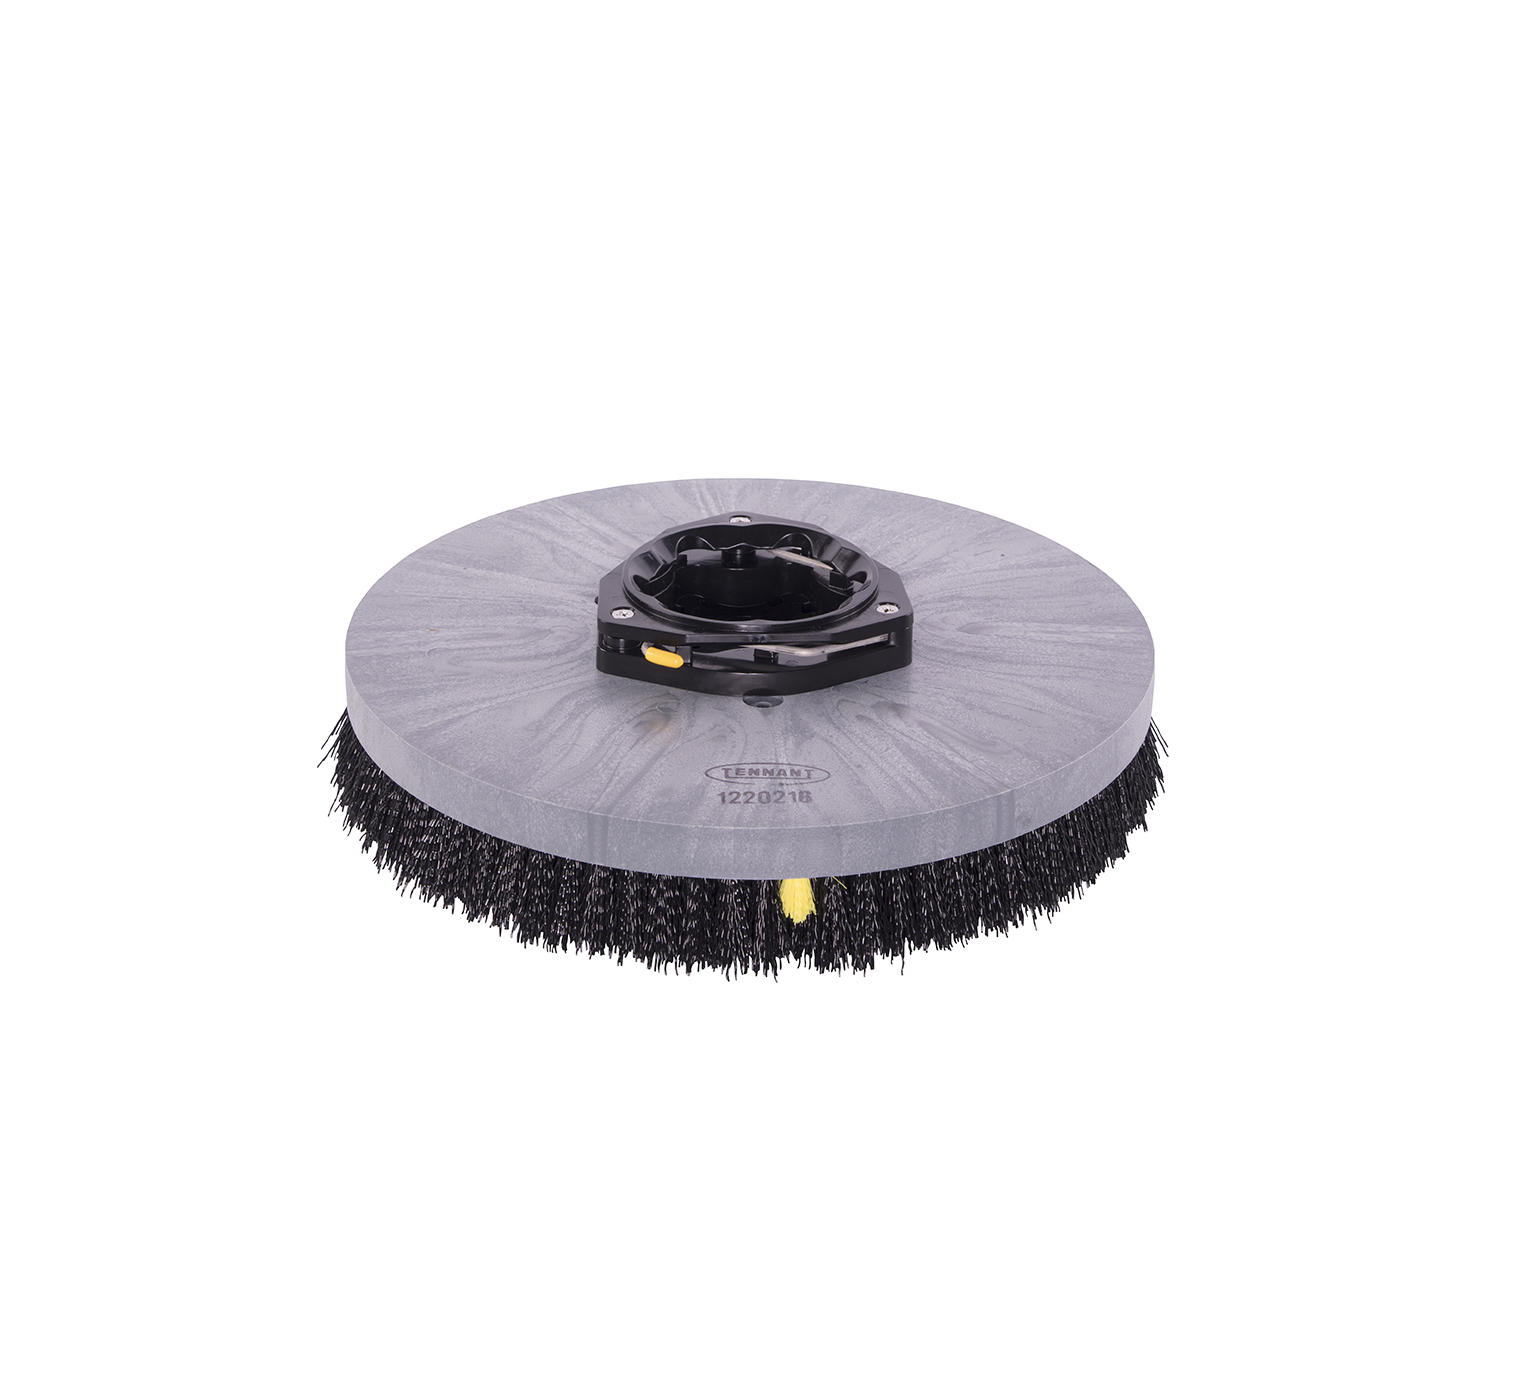 1220216 Polypropylene Disk Scrub Brush Assembly – 16 in / 406 mm alt 1